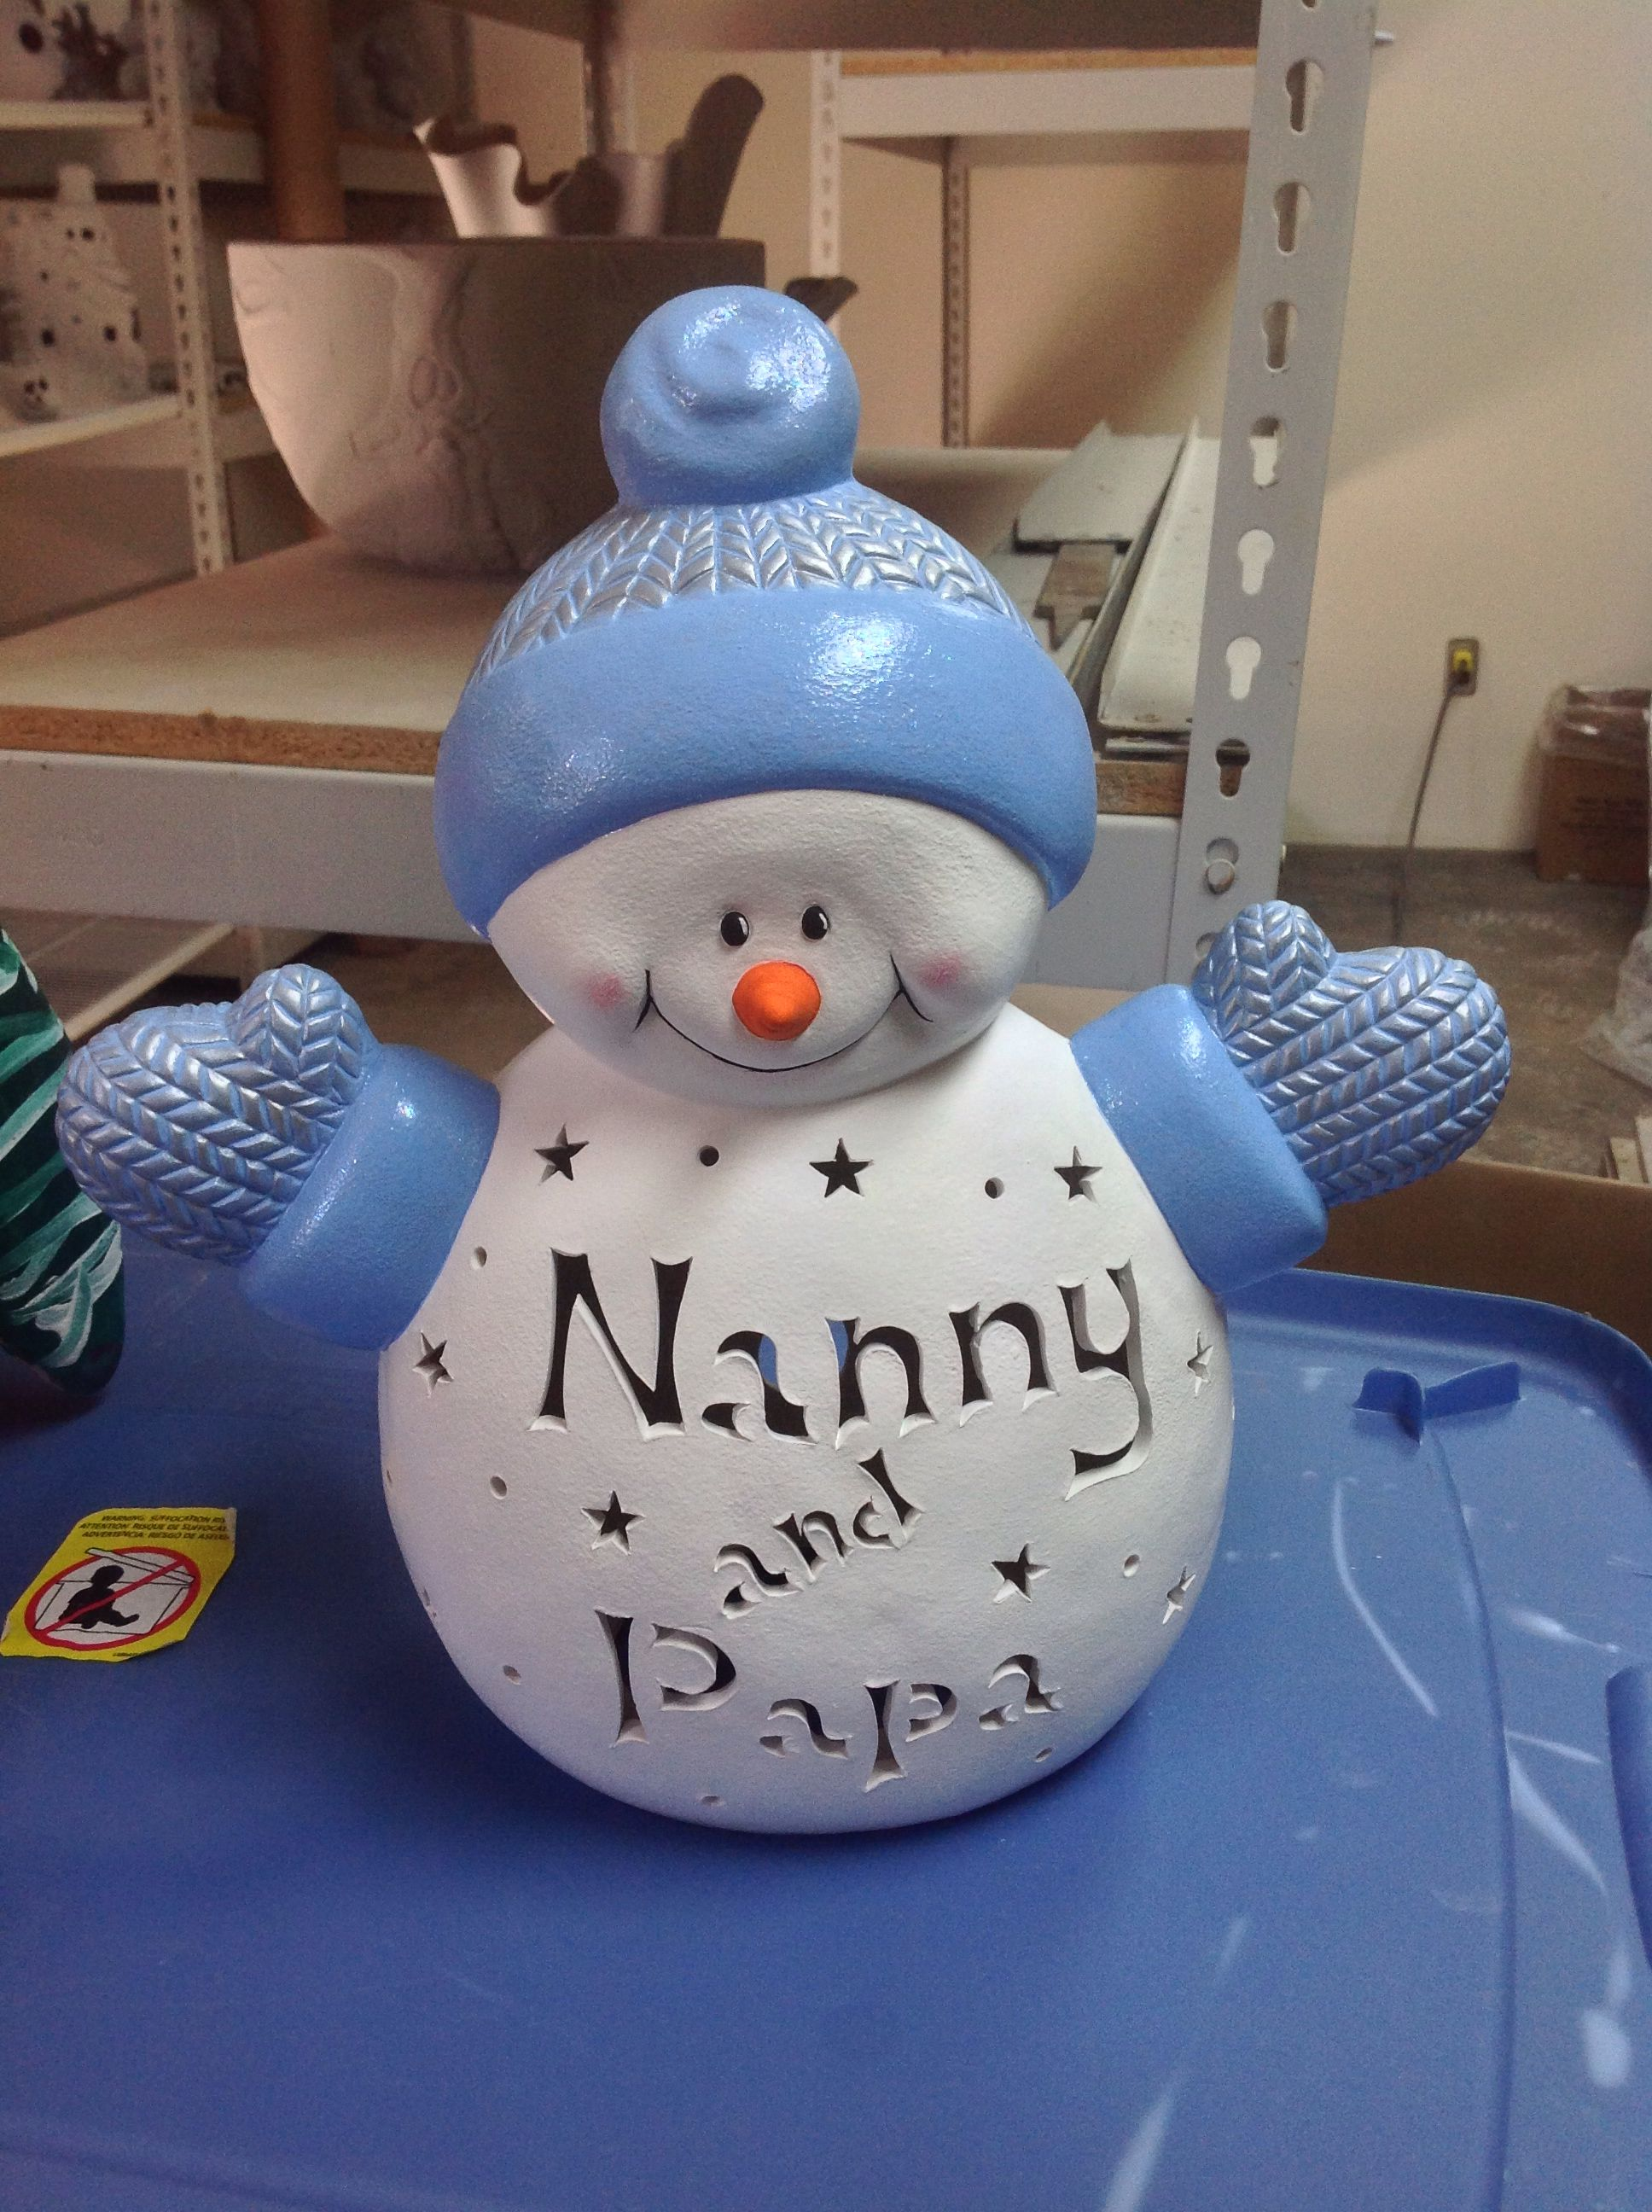 Personalized Ceramic Snowman With Your Name Bisque Not Painted Sells For 25 00 Painted 40 00 Call And Place Your Order Now Ceramics Snowman Crafts